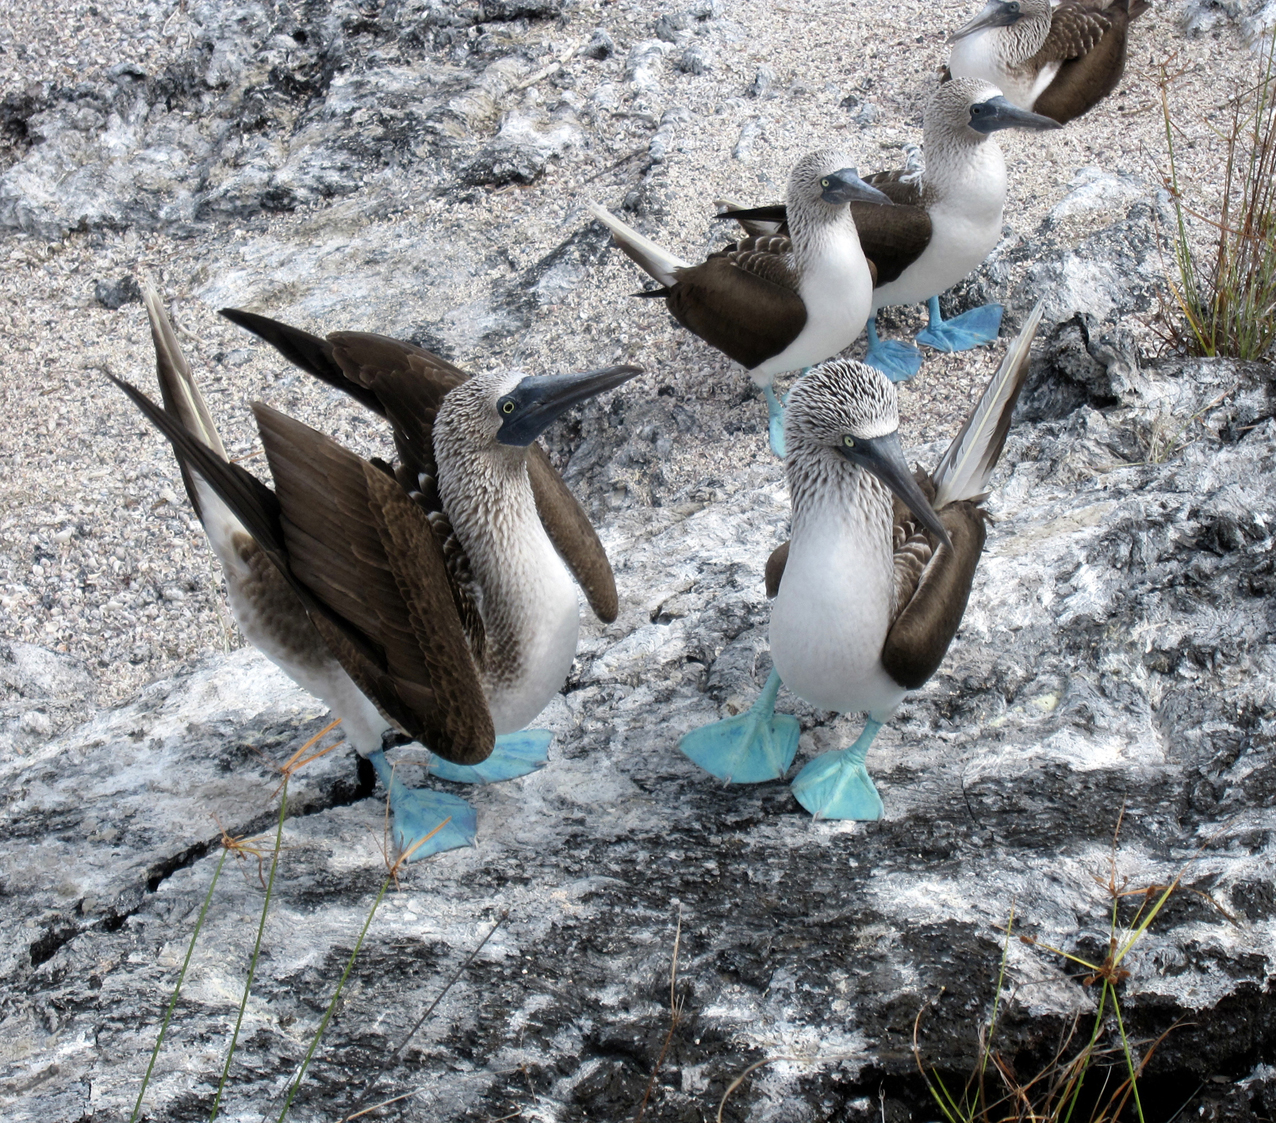 Group Of Blue-footed Boobies. Image By Lynsey Poore